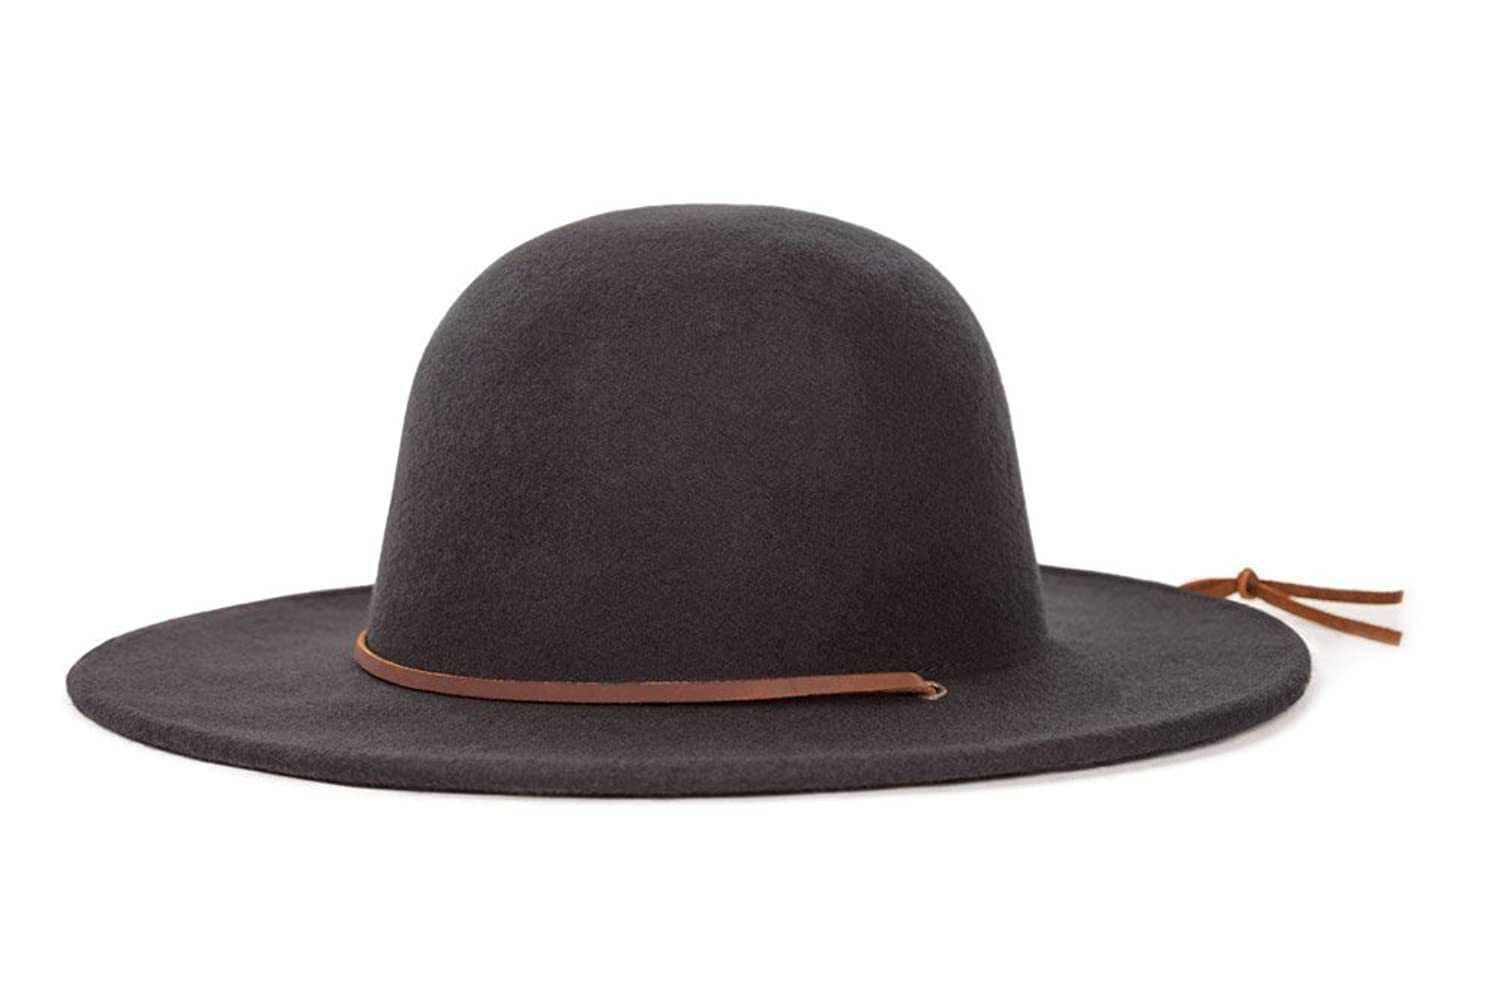 8bfb27827f622 Top5  Brixton Men s Tiller Wide Brim Felt Fedora Hat. Wholesale ...